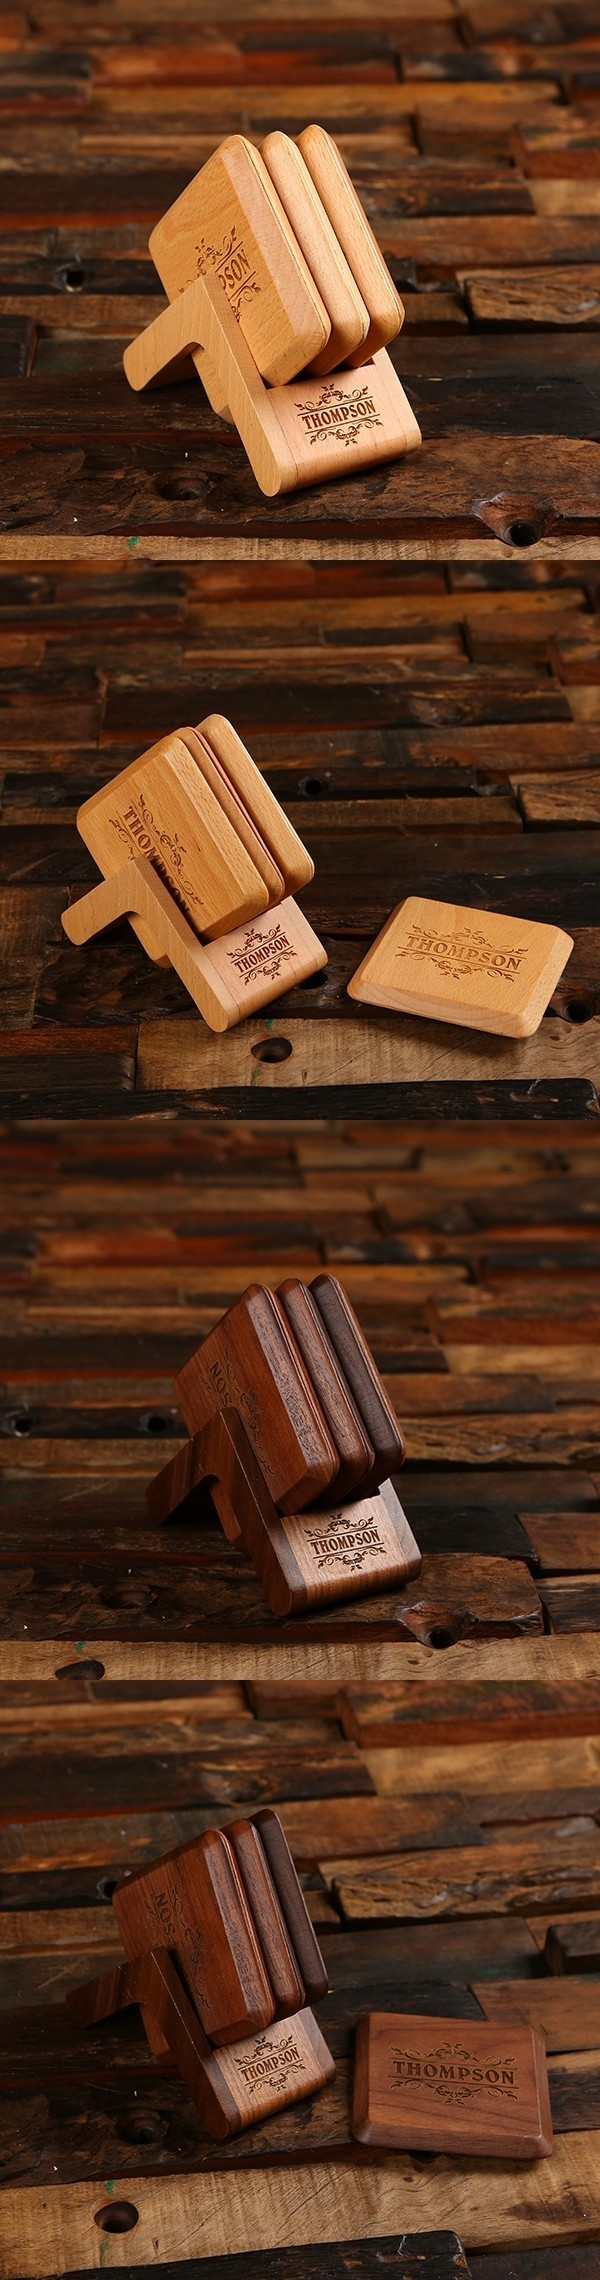 Personalized Black-Walnut or Beech-Wood Coasters with Stand (Set of 4)